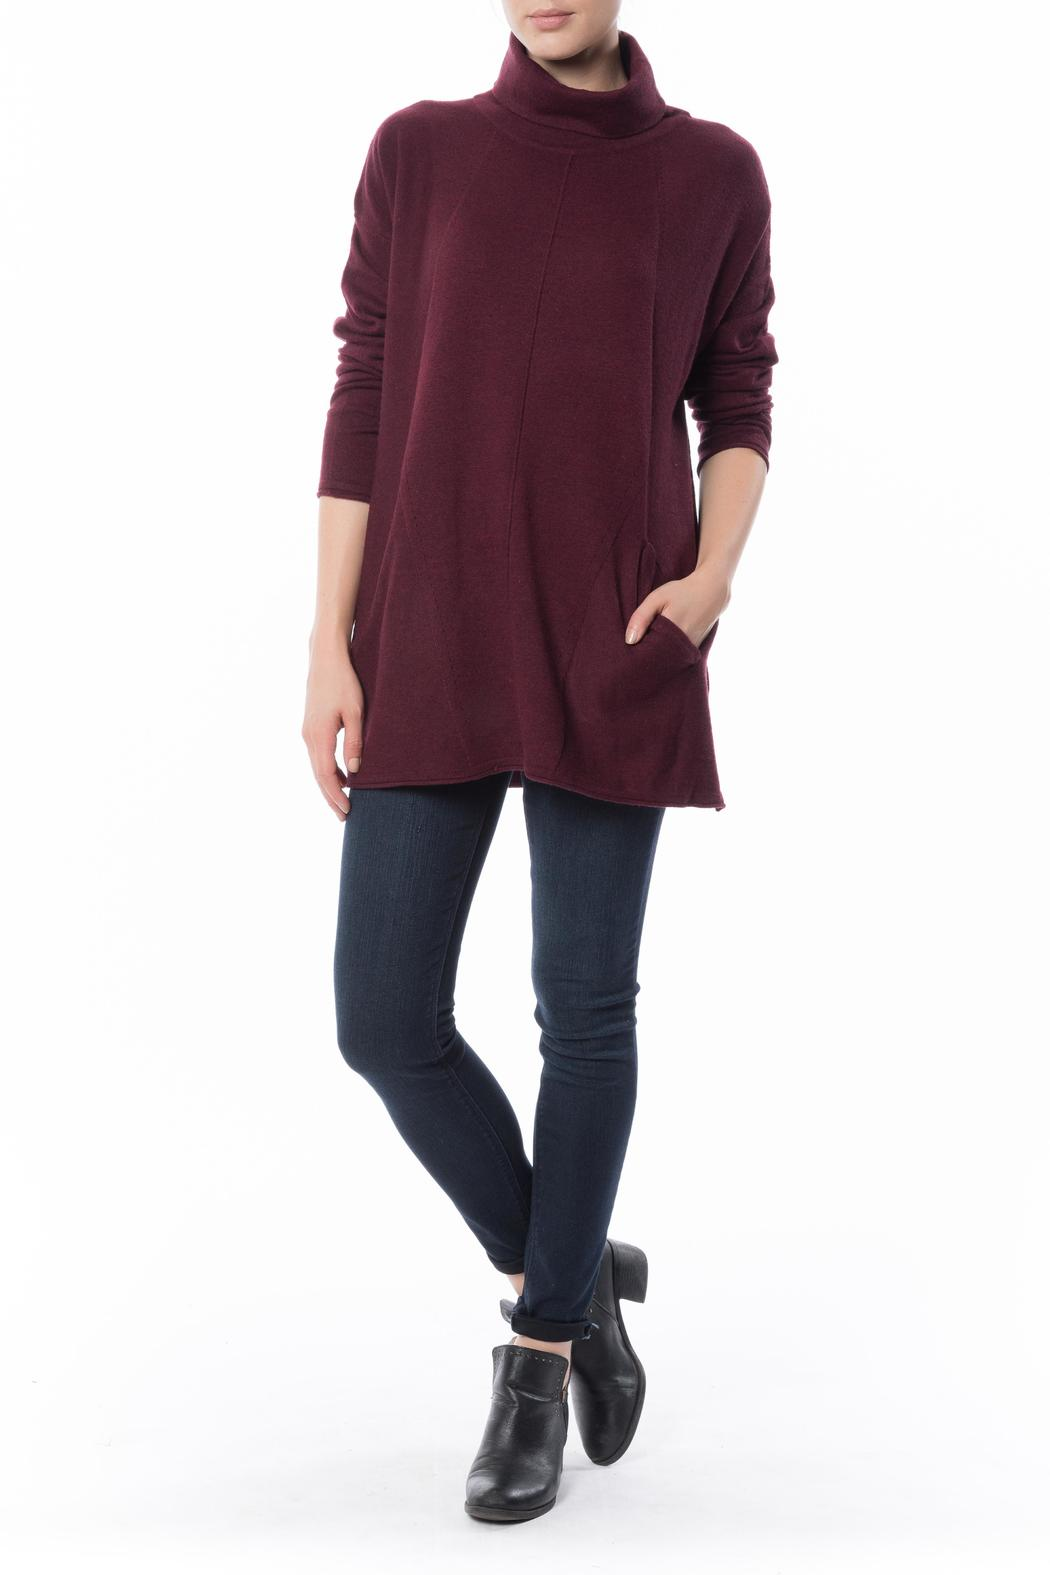 Eli-Bet Turtle Neck Tunic from Manhattan by Montmartre ...